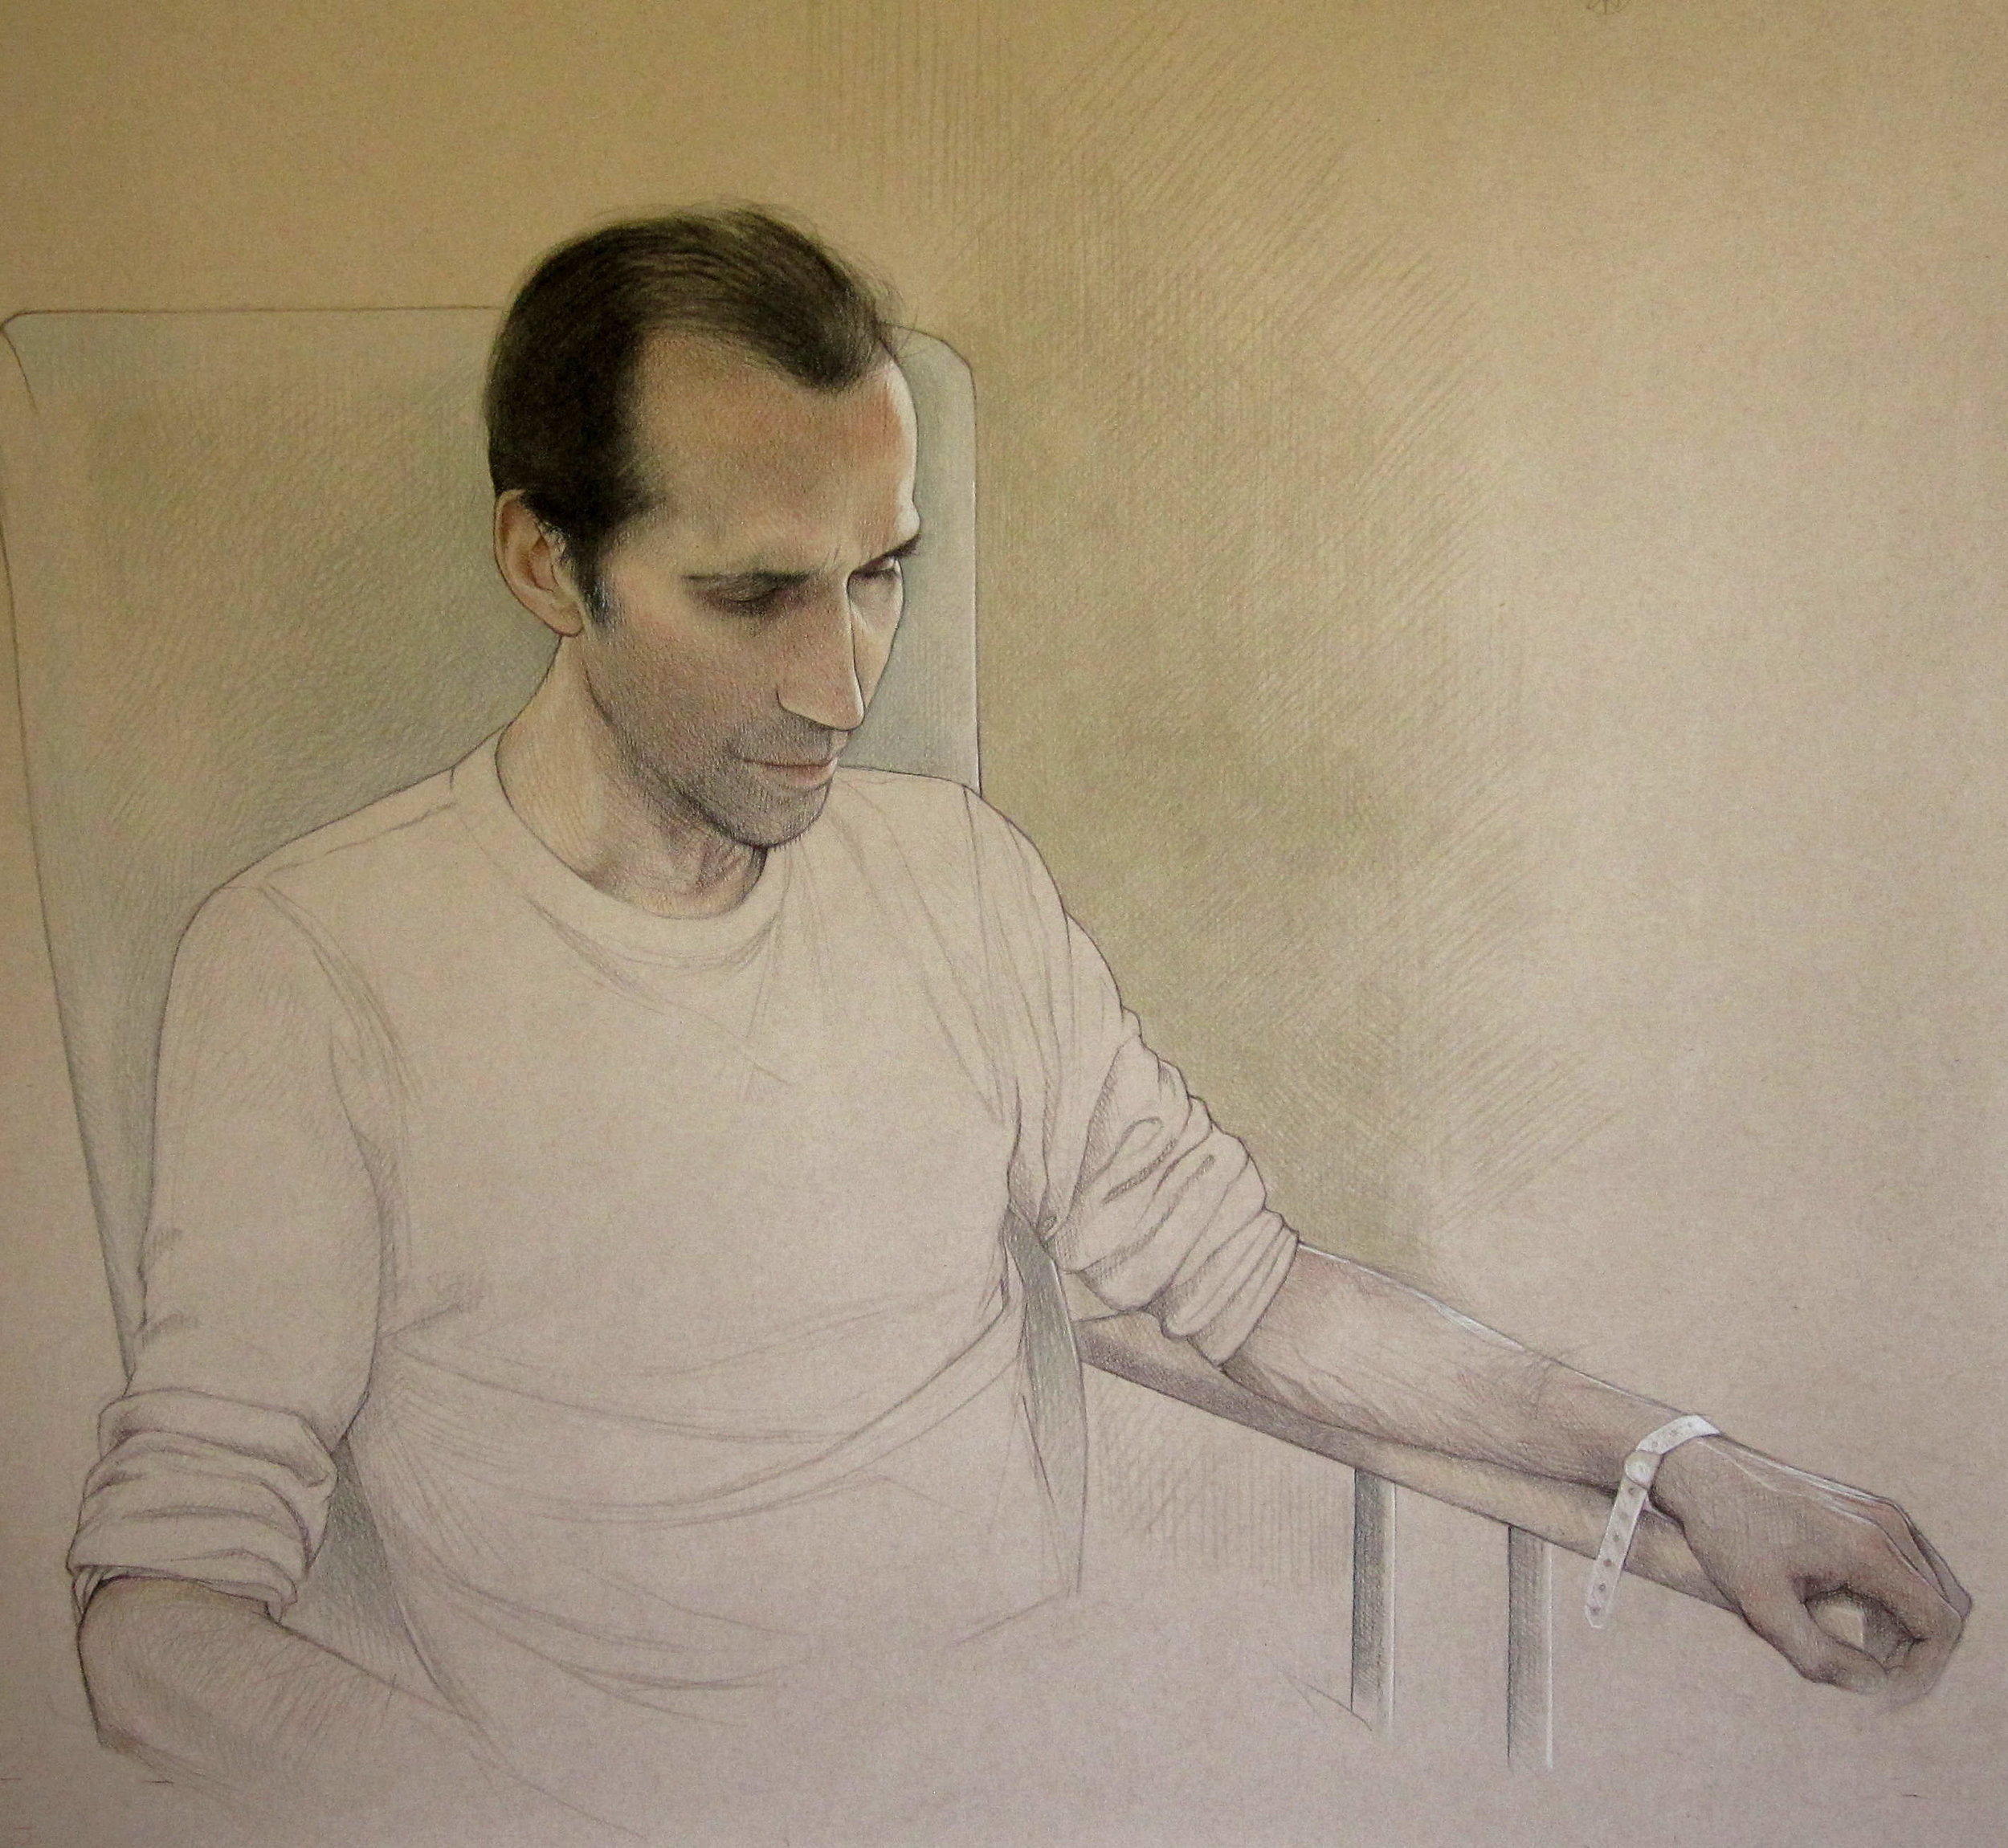 2017 SPA Exhibition, Chris in hospital 98 x 105 cm (framed)     Coloured pencil on paper     £950